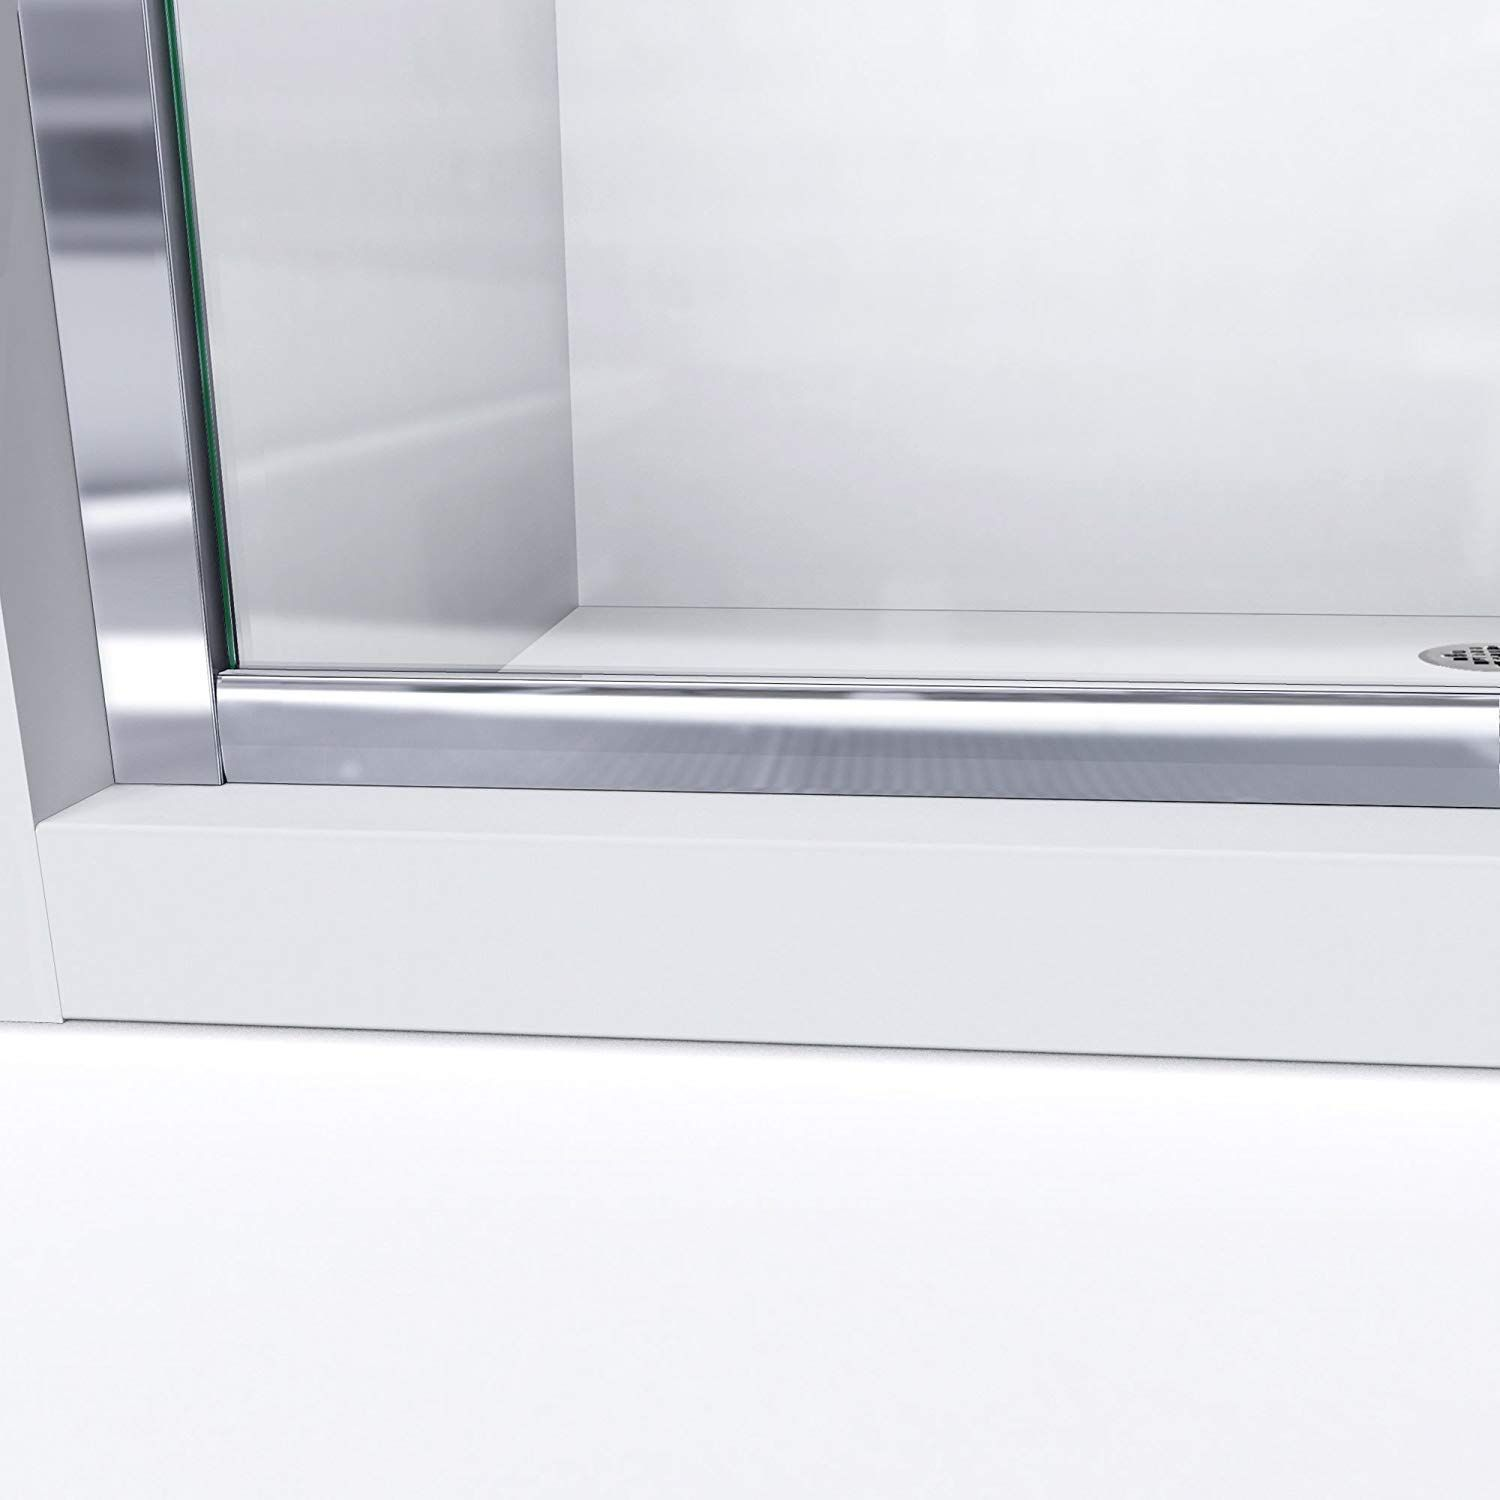 Anodized Aluminum Wall Profiles And Guide Rails Shower Doors Dreamline Tub Doors